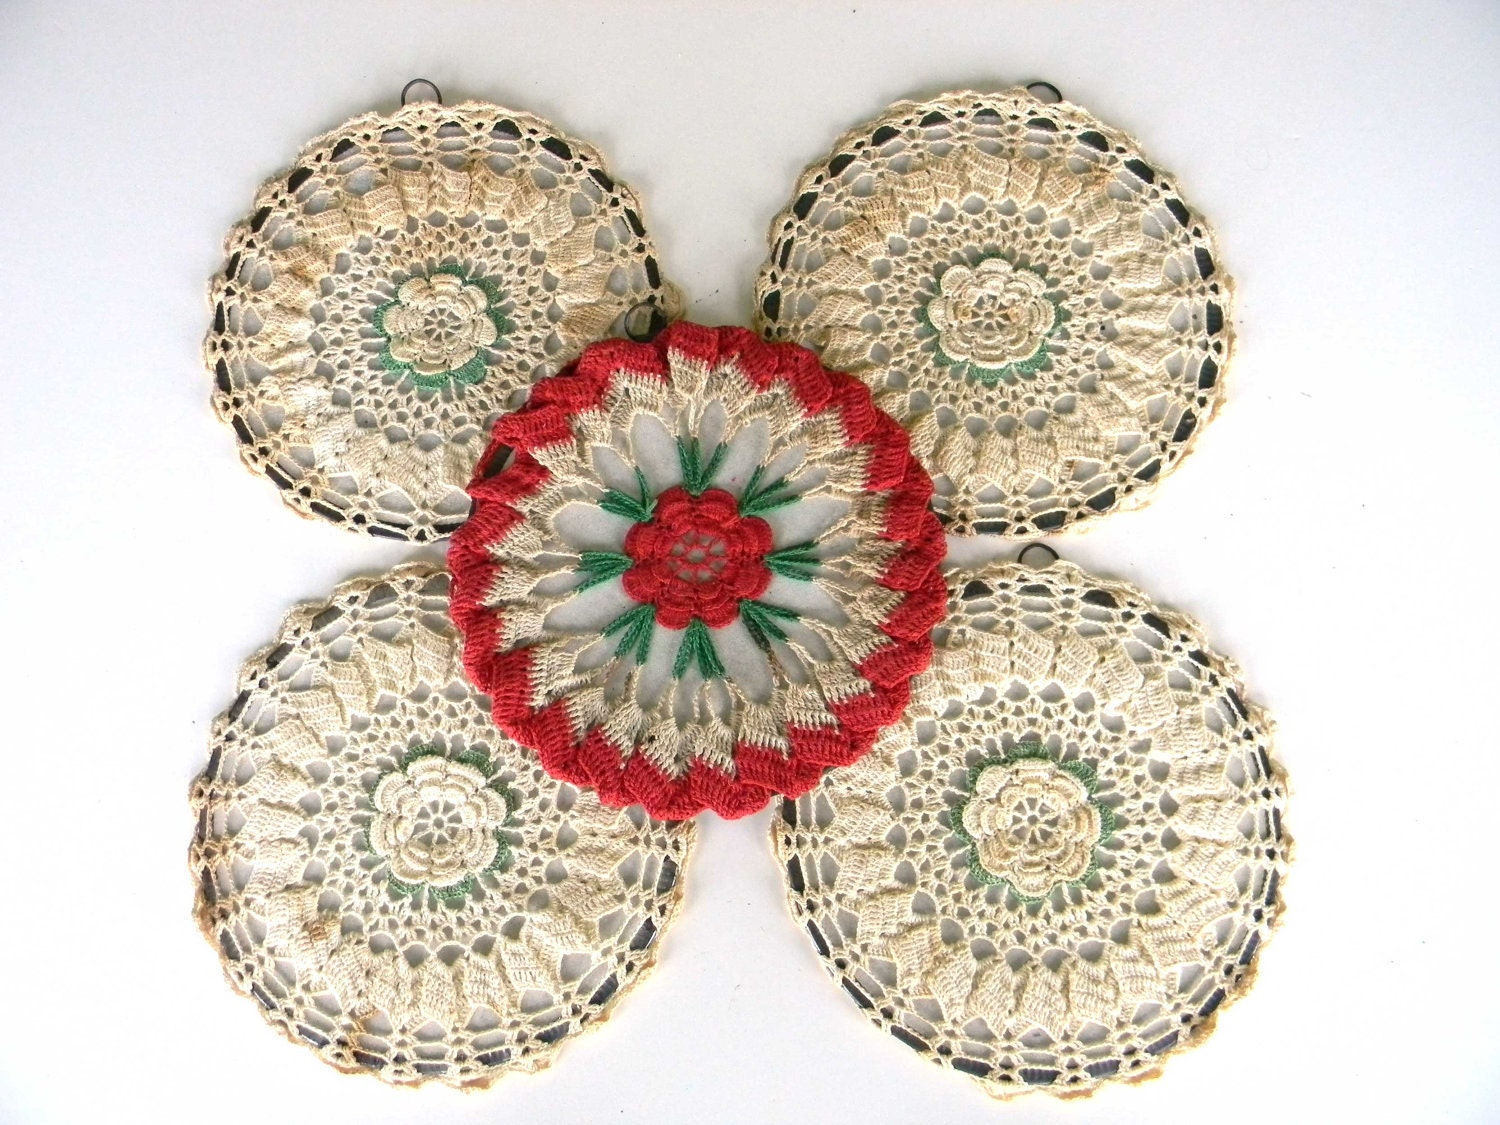 Crochet Wall Hanging : Items similar to Vintage Crocheted Doily Wall Hangings Decor Set ...